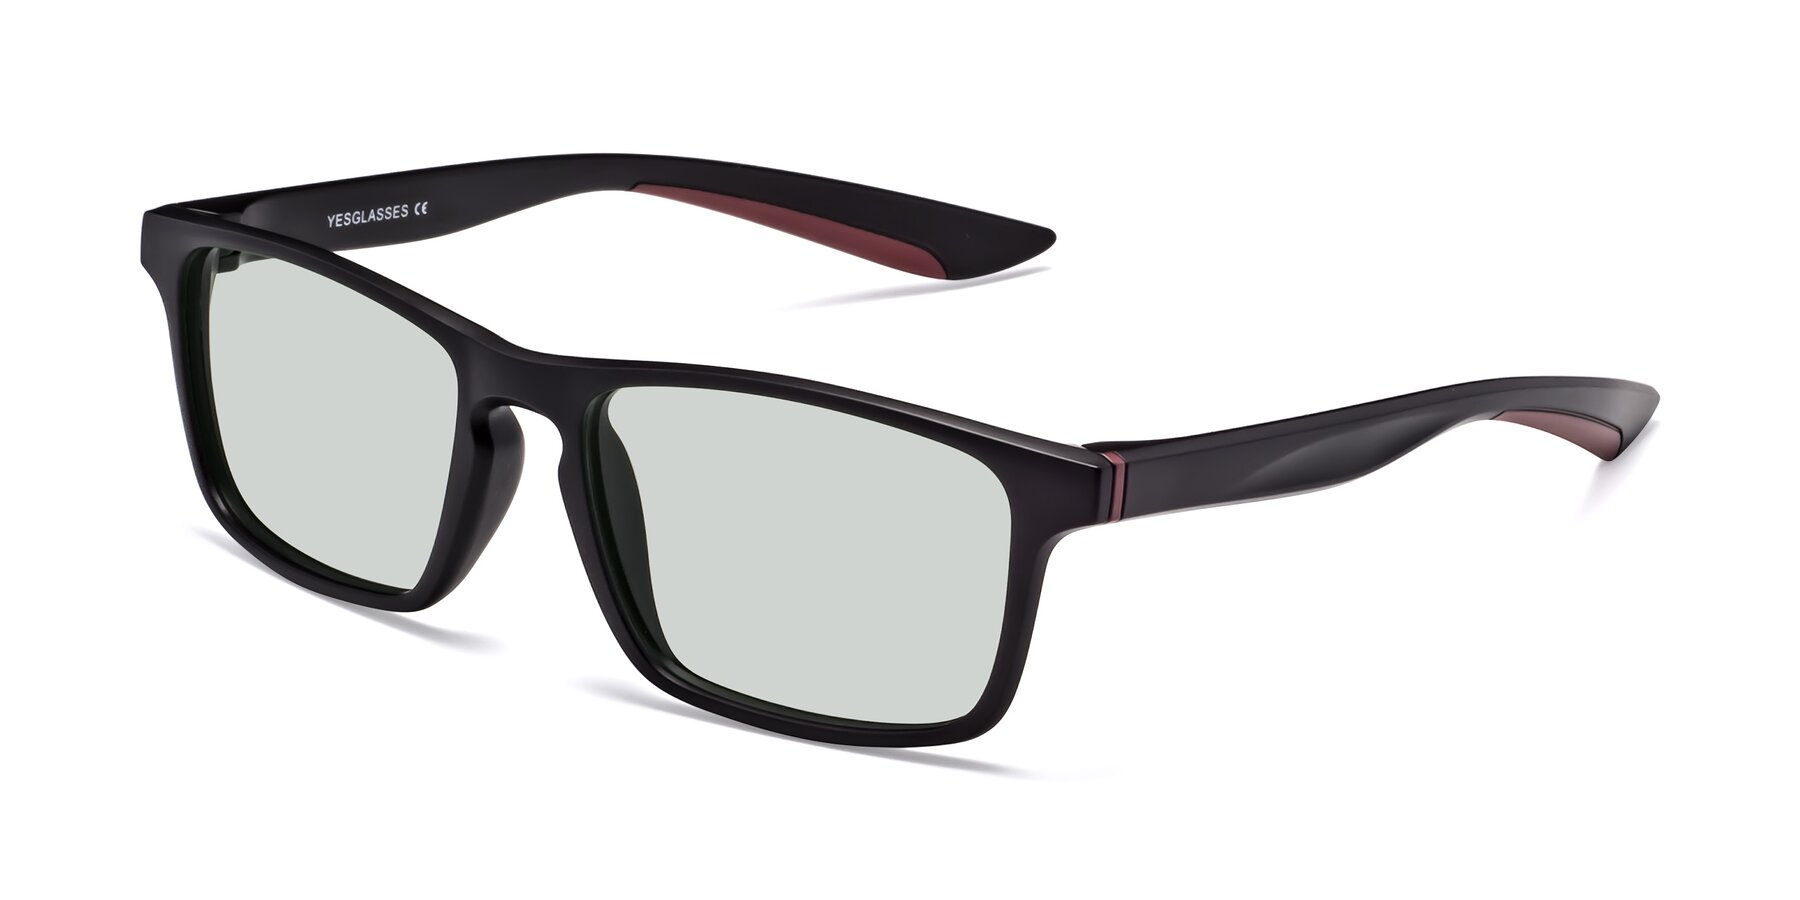 Angle of Passion in Matte Black-Wine with Light Green Tinted Lenses